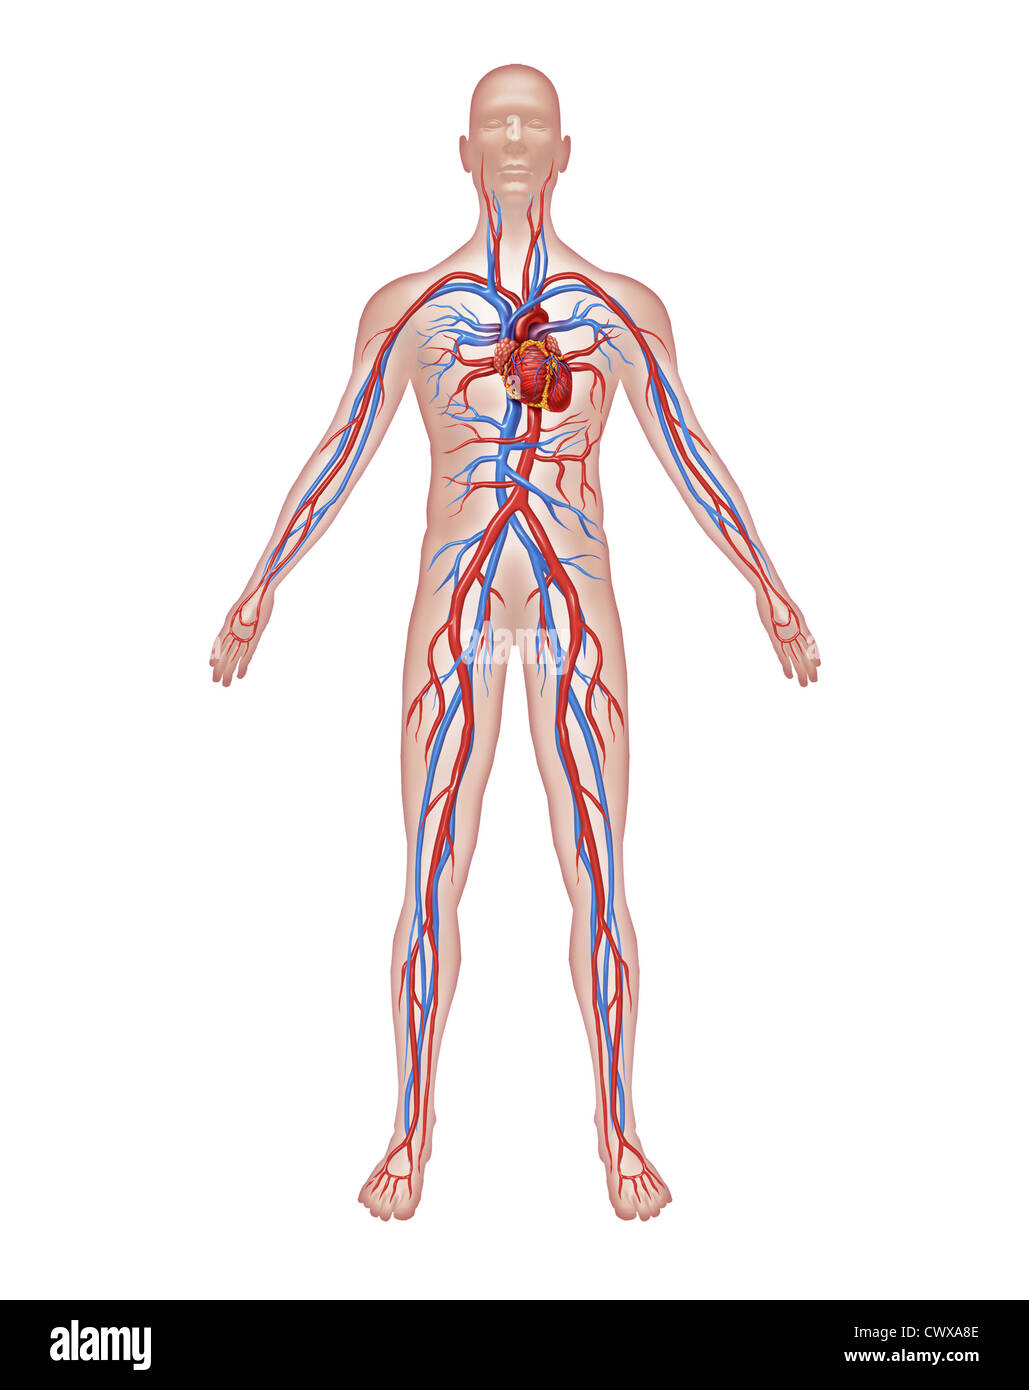 Human Circulation Anatomy And Cardiovascular Heart System With A